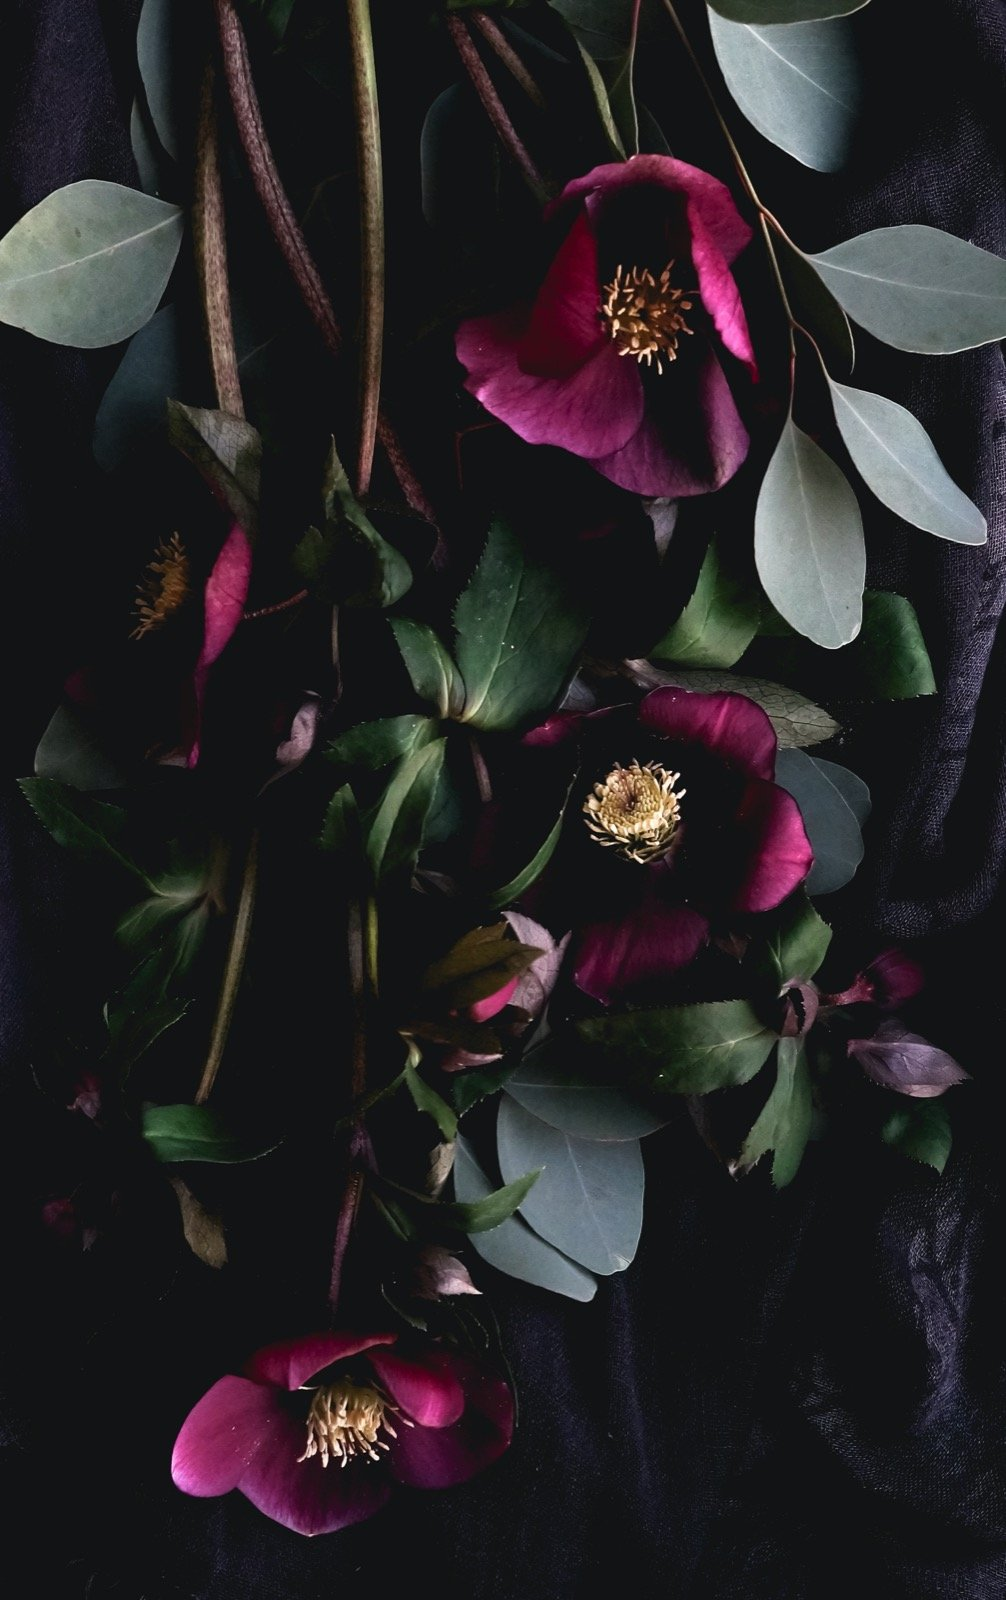 Bouquet of purple flowers on a dark background in low key colors